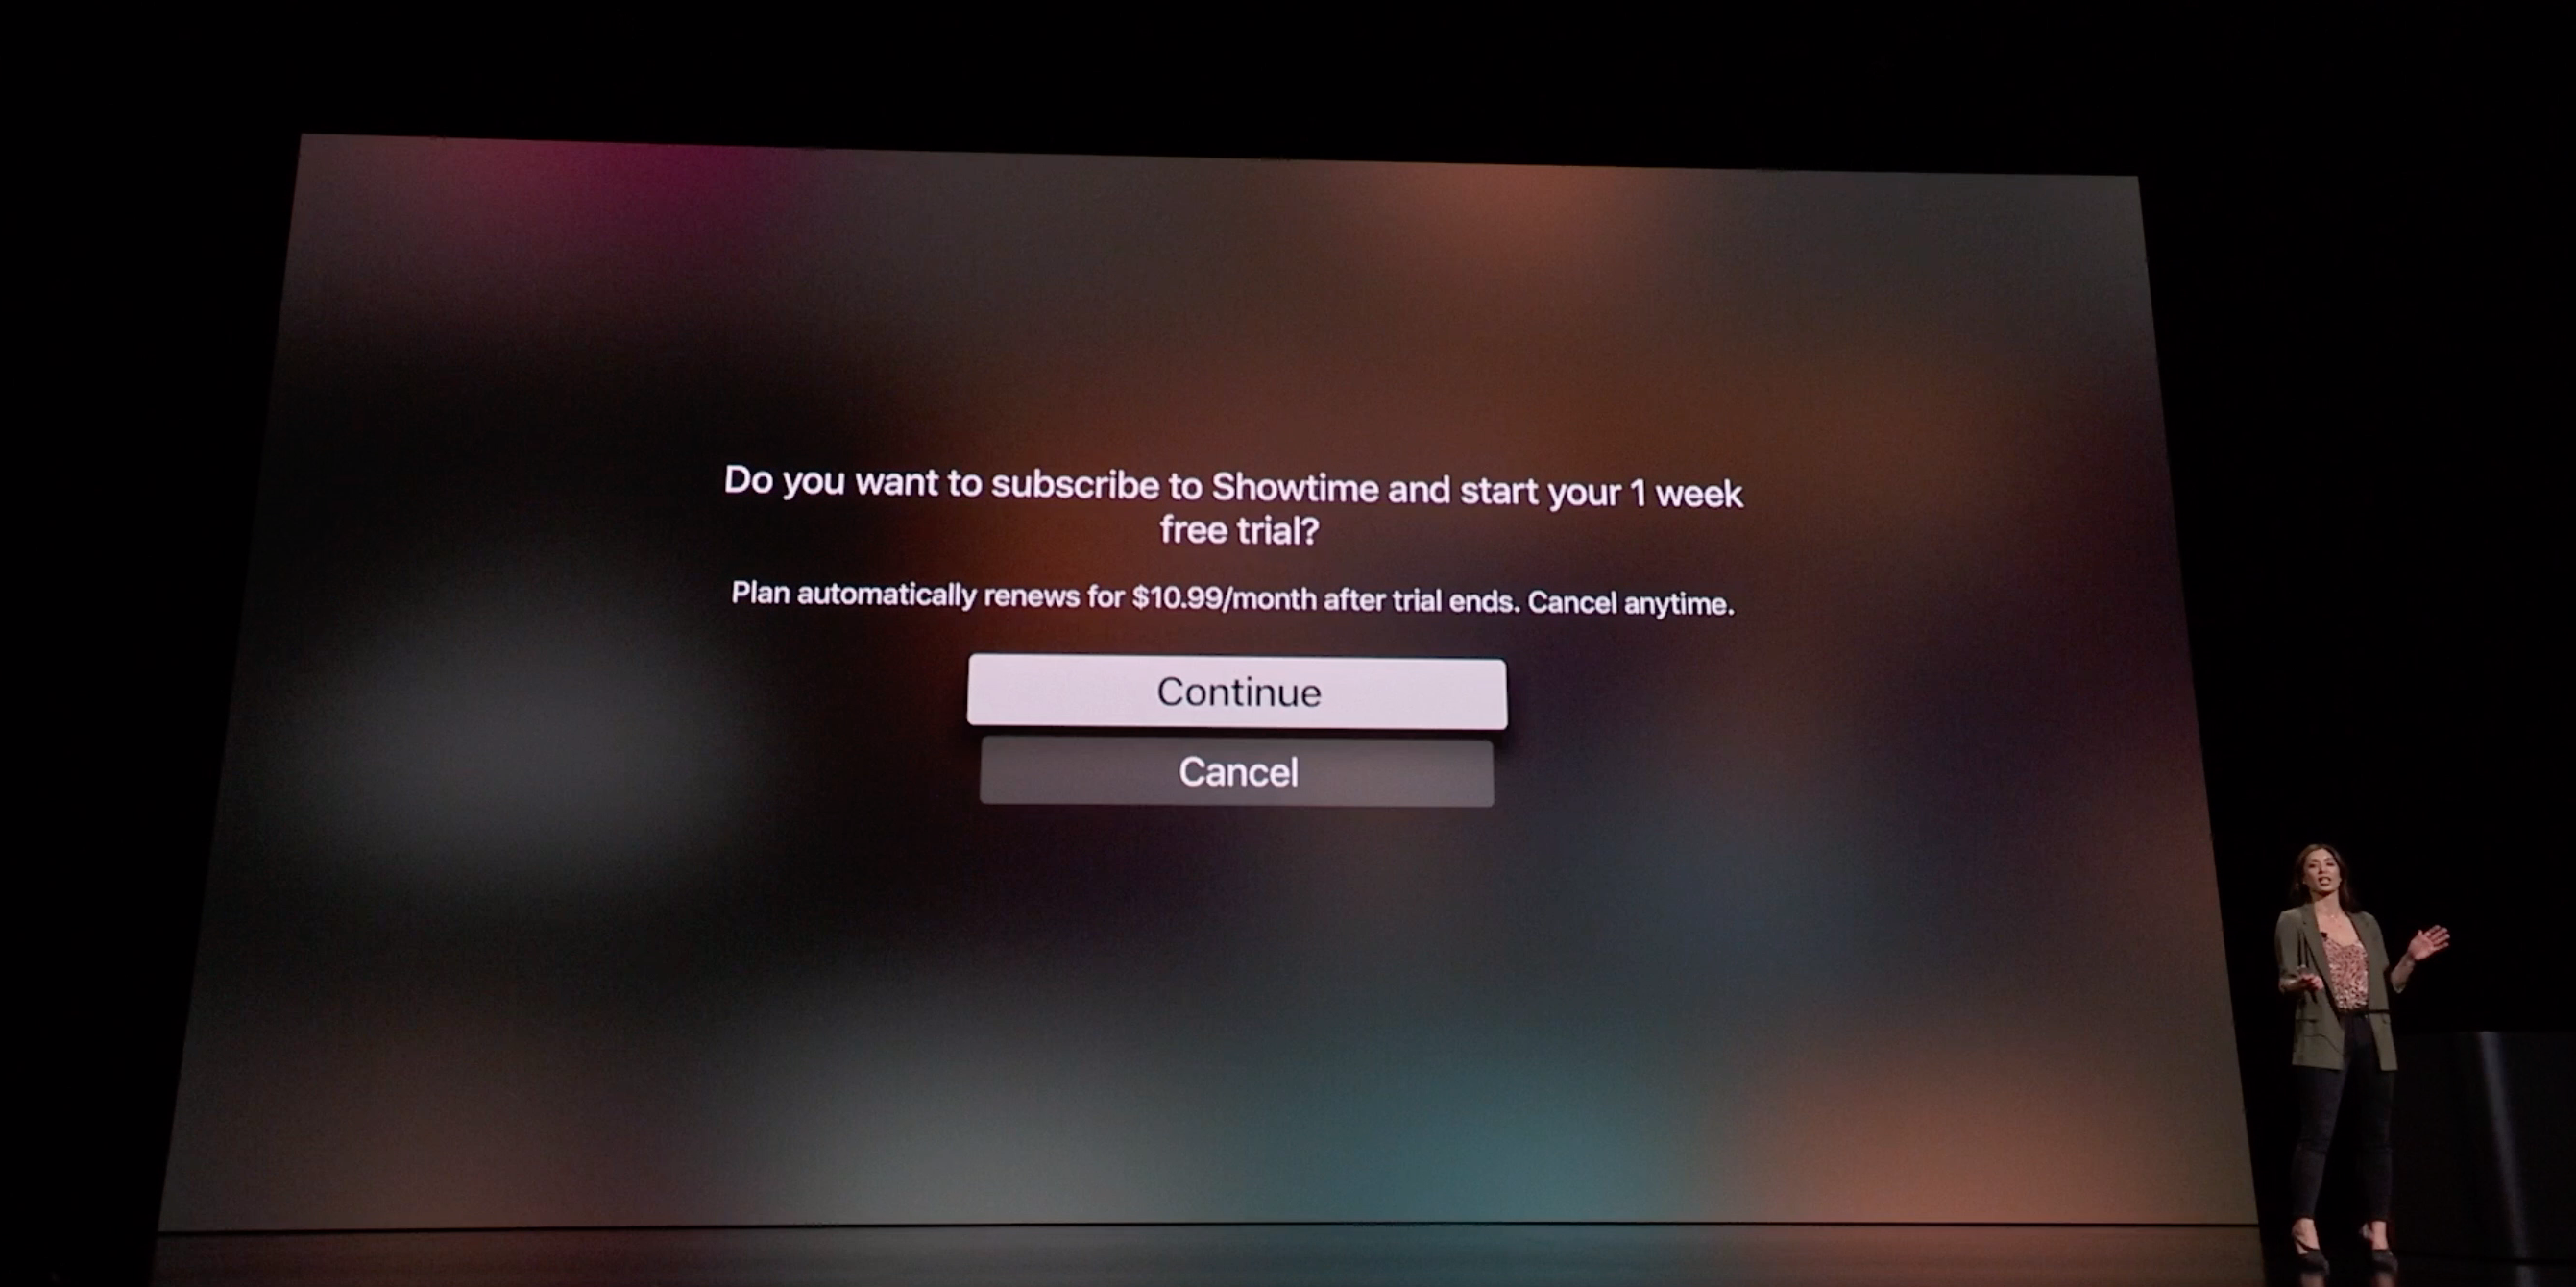 Apple Keynote Hints That Hbo Showtime Starz Won T Be Discounted On Apple Tv Channels Tv Channels Apple Tv Hbo